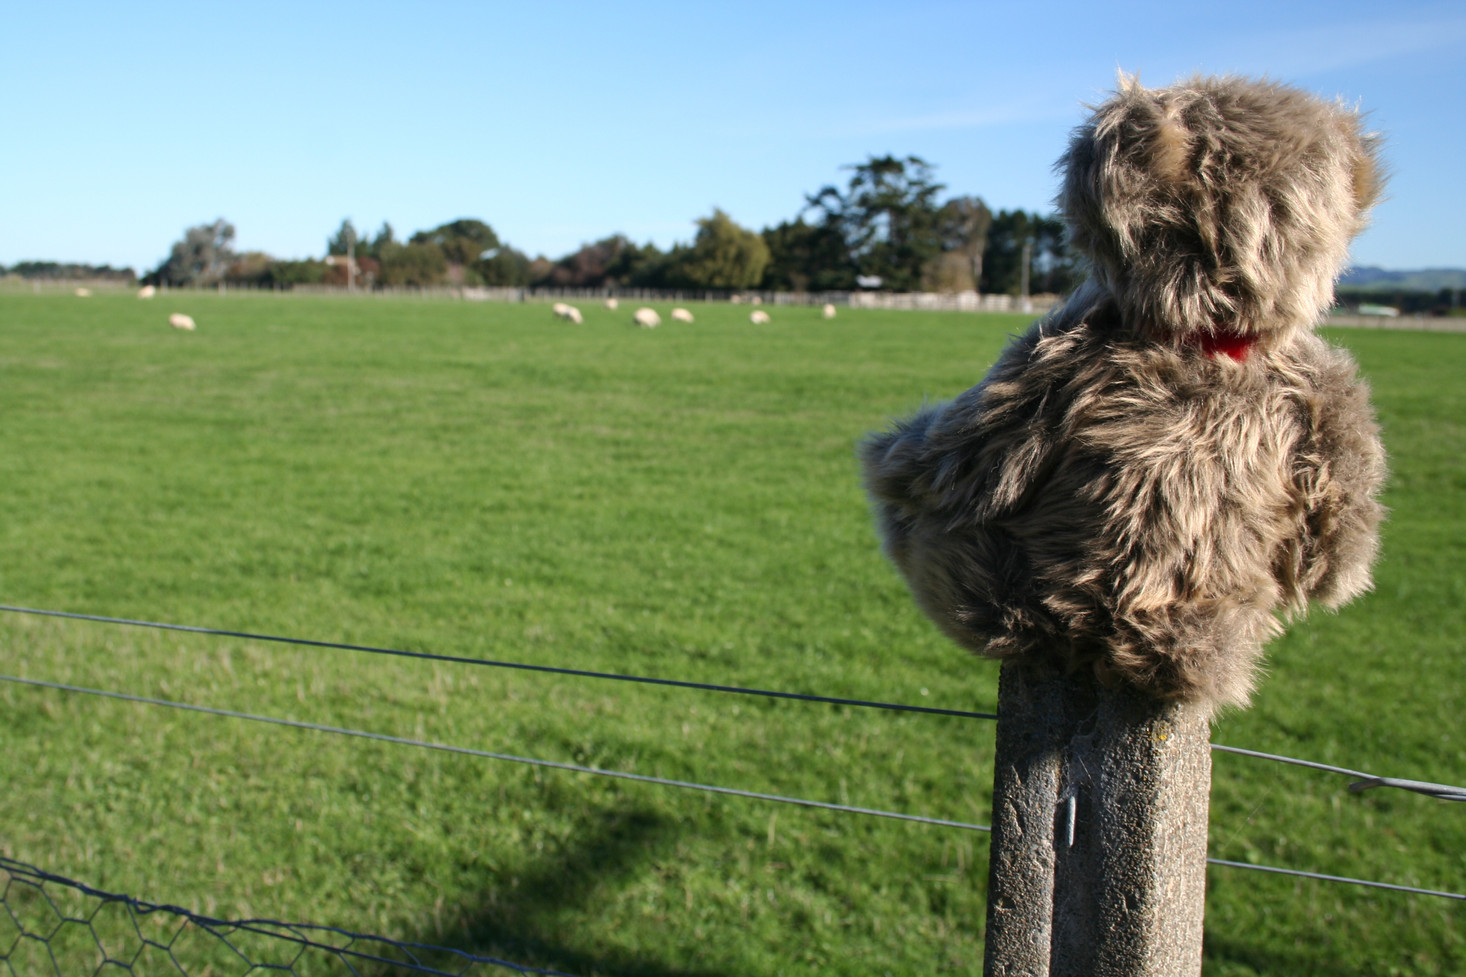 Stowie posts himself to admire New Zealand's famous sheep